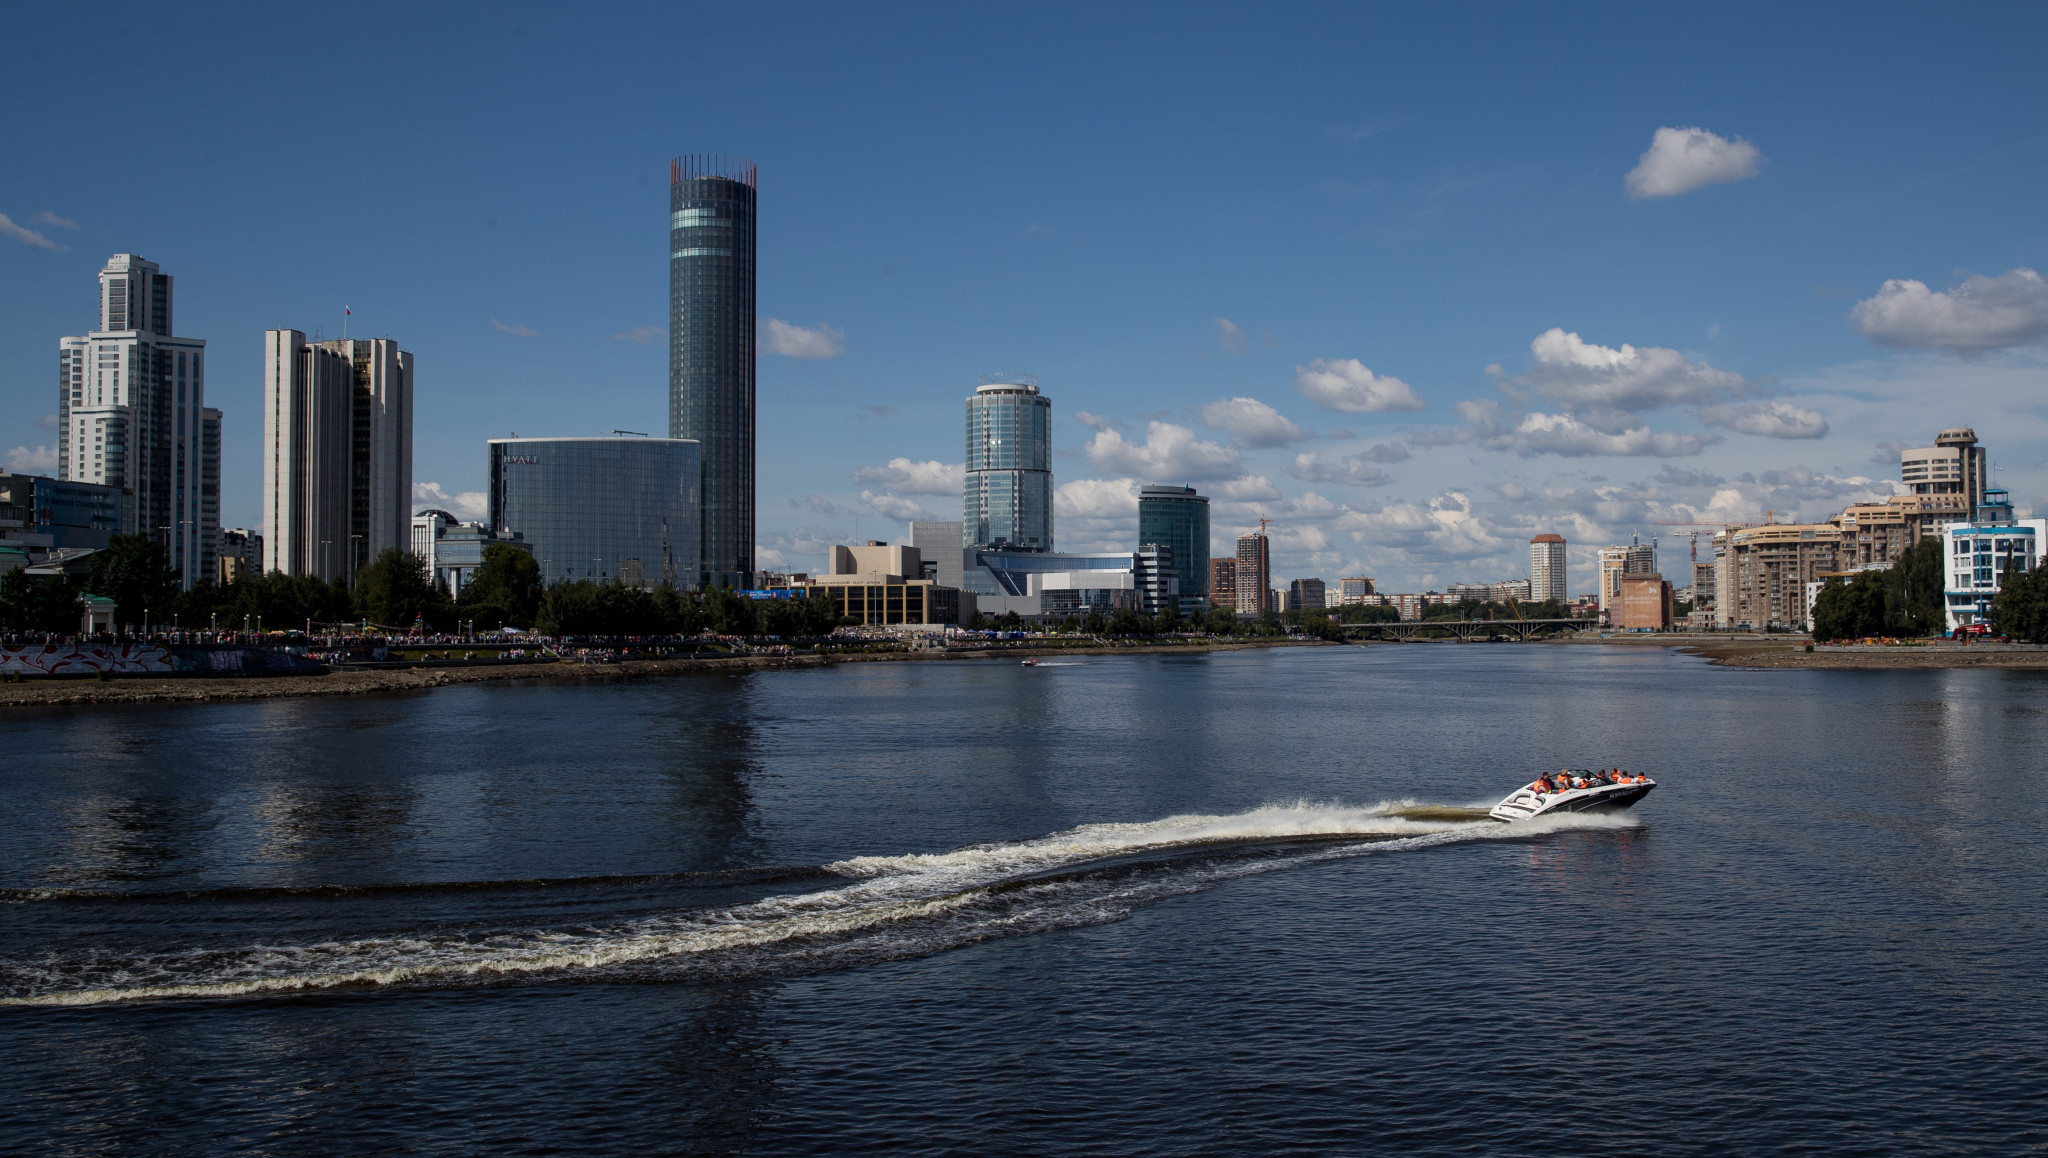 Yekaterinburg is set to host the 2023 Summer World University Games ©Getty Images